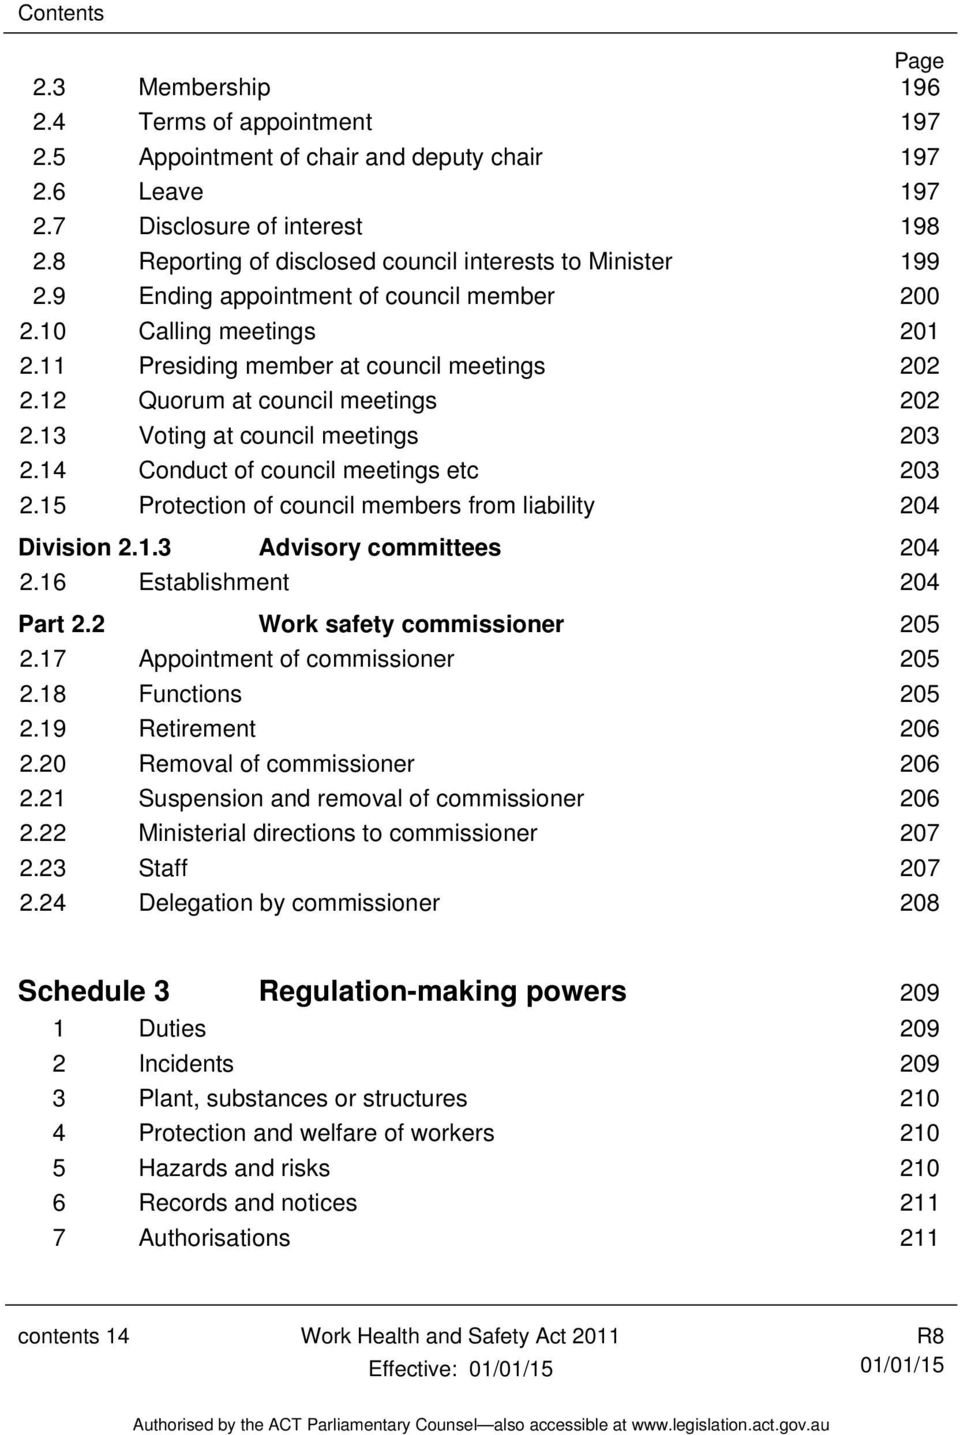 12 Quorum at council meetings 202 2.13 Voting at council meetings 203 2.14 Conduct of council meetings etc 203 2.15 Protection of council members from liability 204 Division 2.1.3 Advisory committees 204 2.